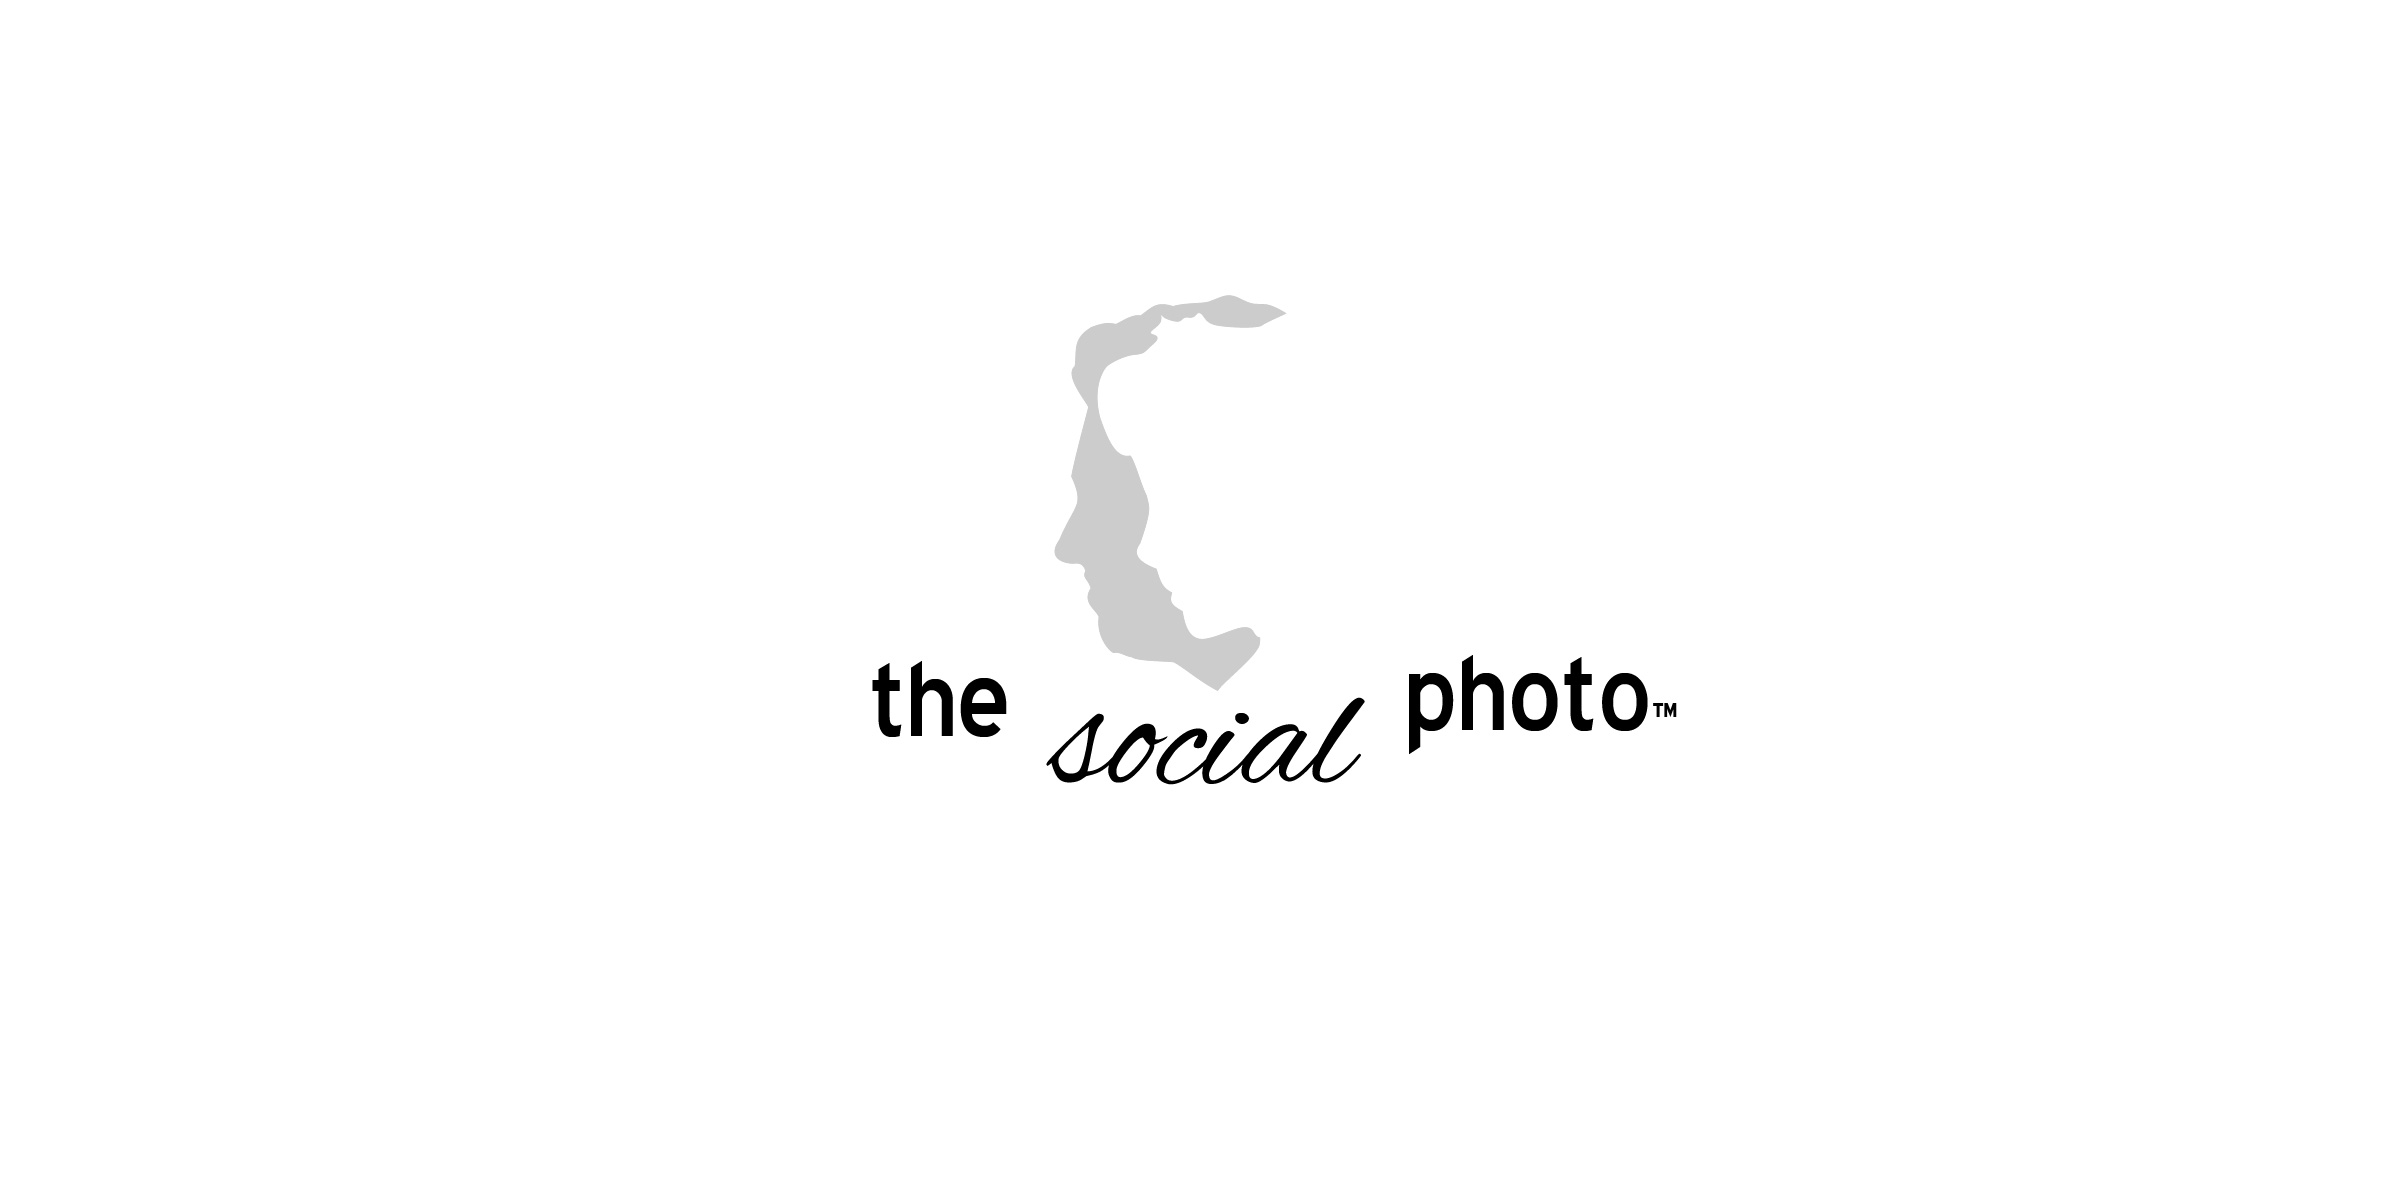 Logo Design by Nancy Grant - Entry No. 4 in the Logo Design Contest New Logo Design for the social photo.